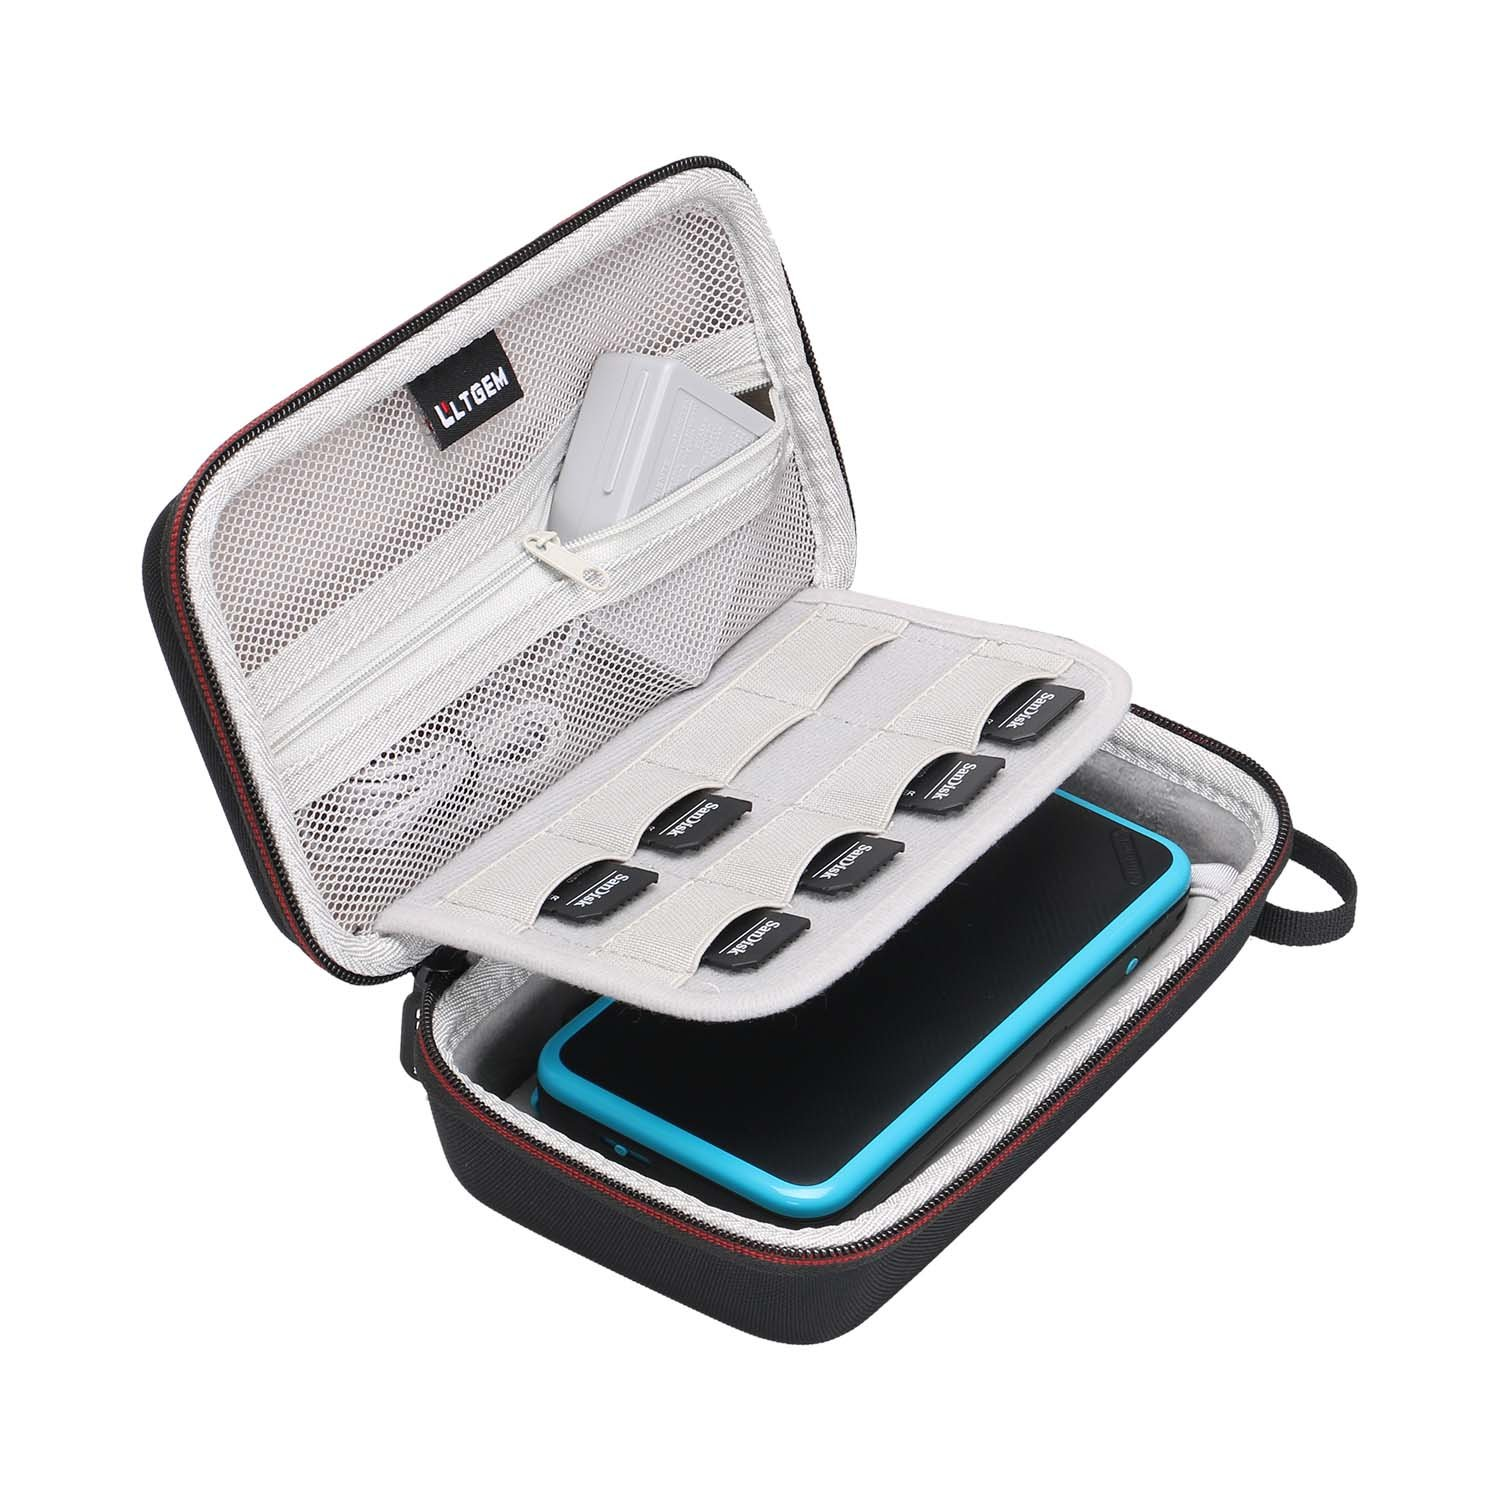 LTGEM Carrying Case for New Nintendo 3DS, New 2DS XL, New 3DS XL, Nintendo New 3DS XL -Super NES Edition-[NOT for Nintendo Switch]